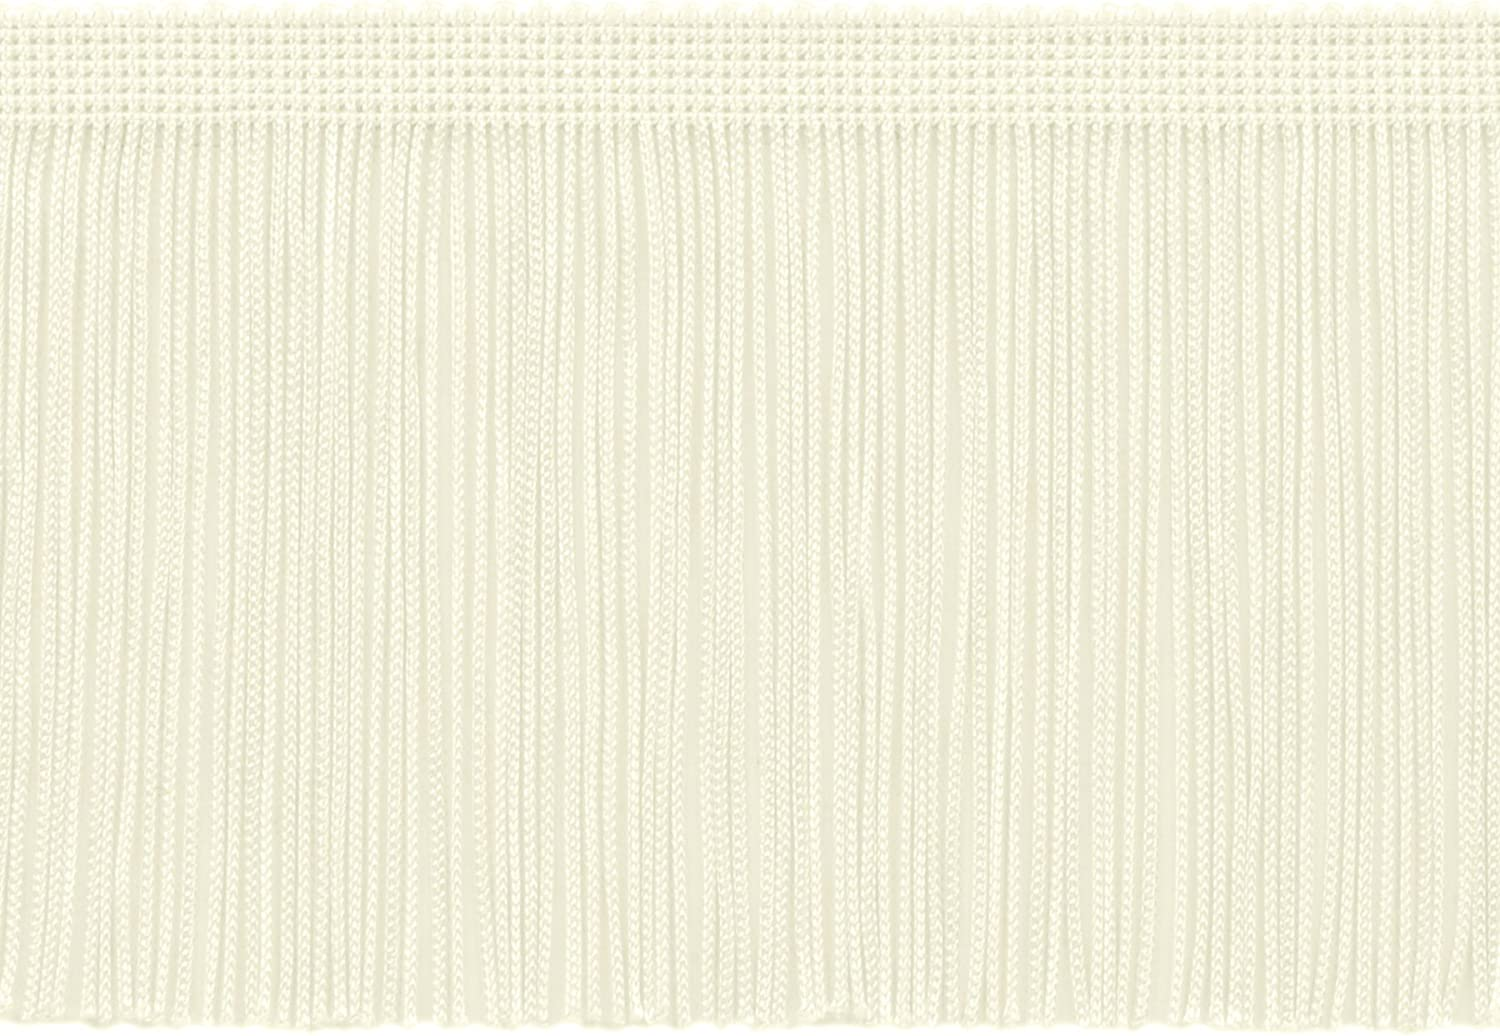 DÉCOPRO 18 Yard Package of 4 Trim Fringe Long Chainette Inch Max 76% OFF shopping